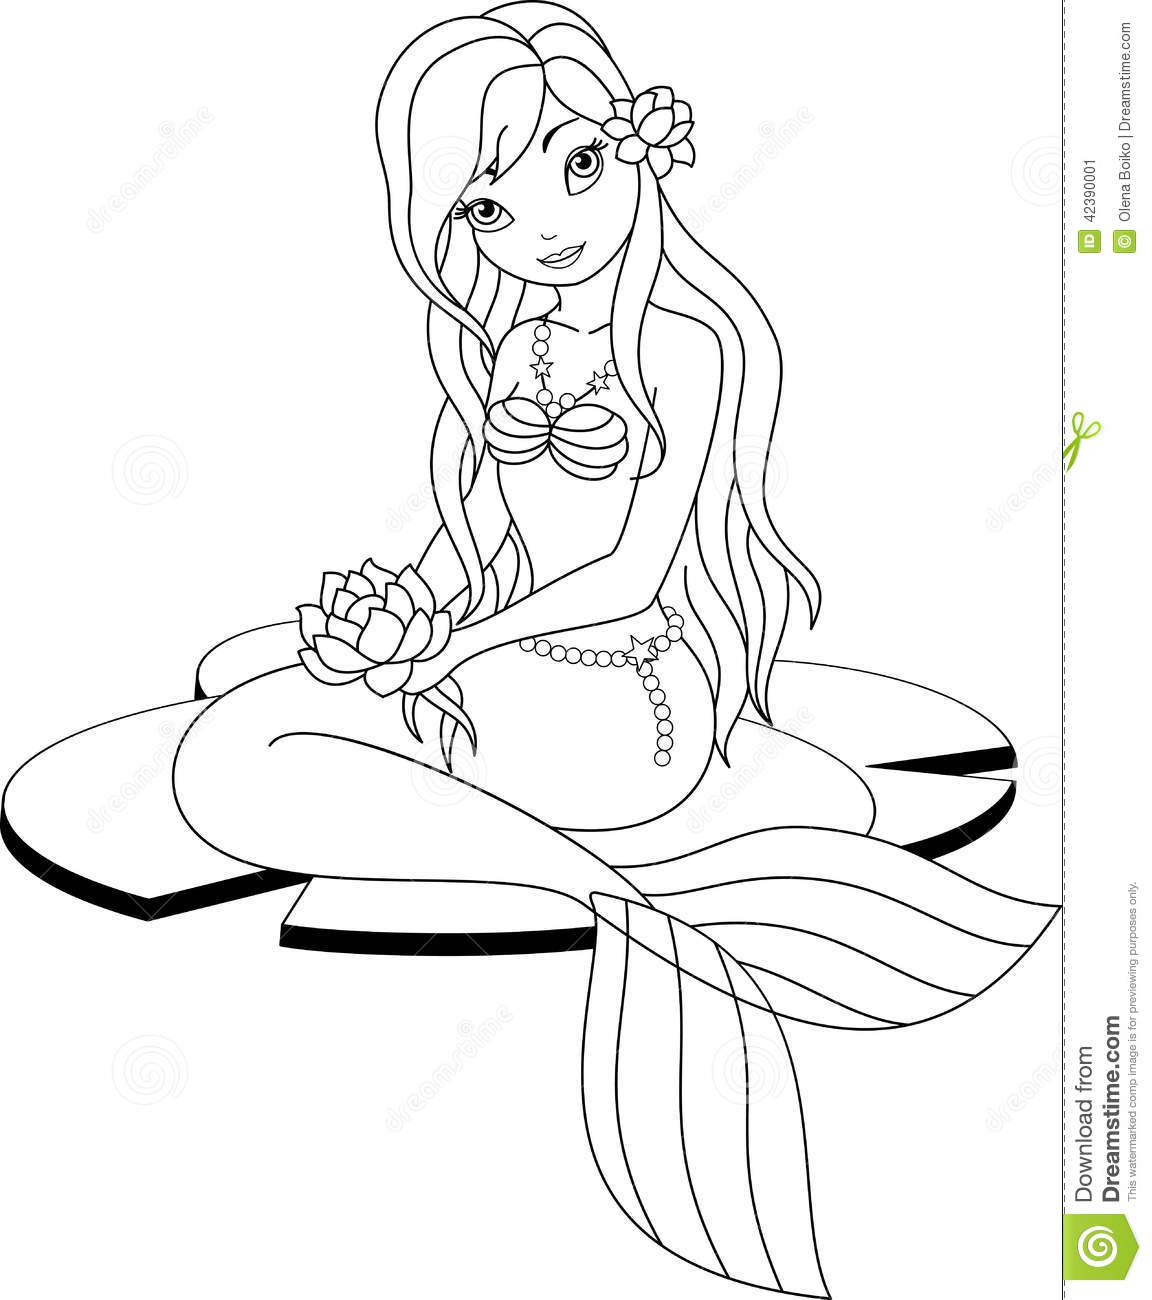 Mermaid Coloring Page Stock Vector Illustration Of Lotus